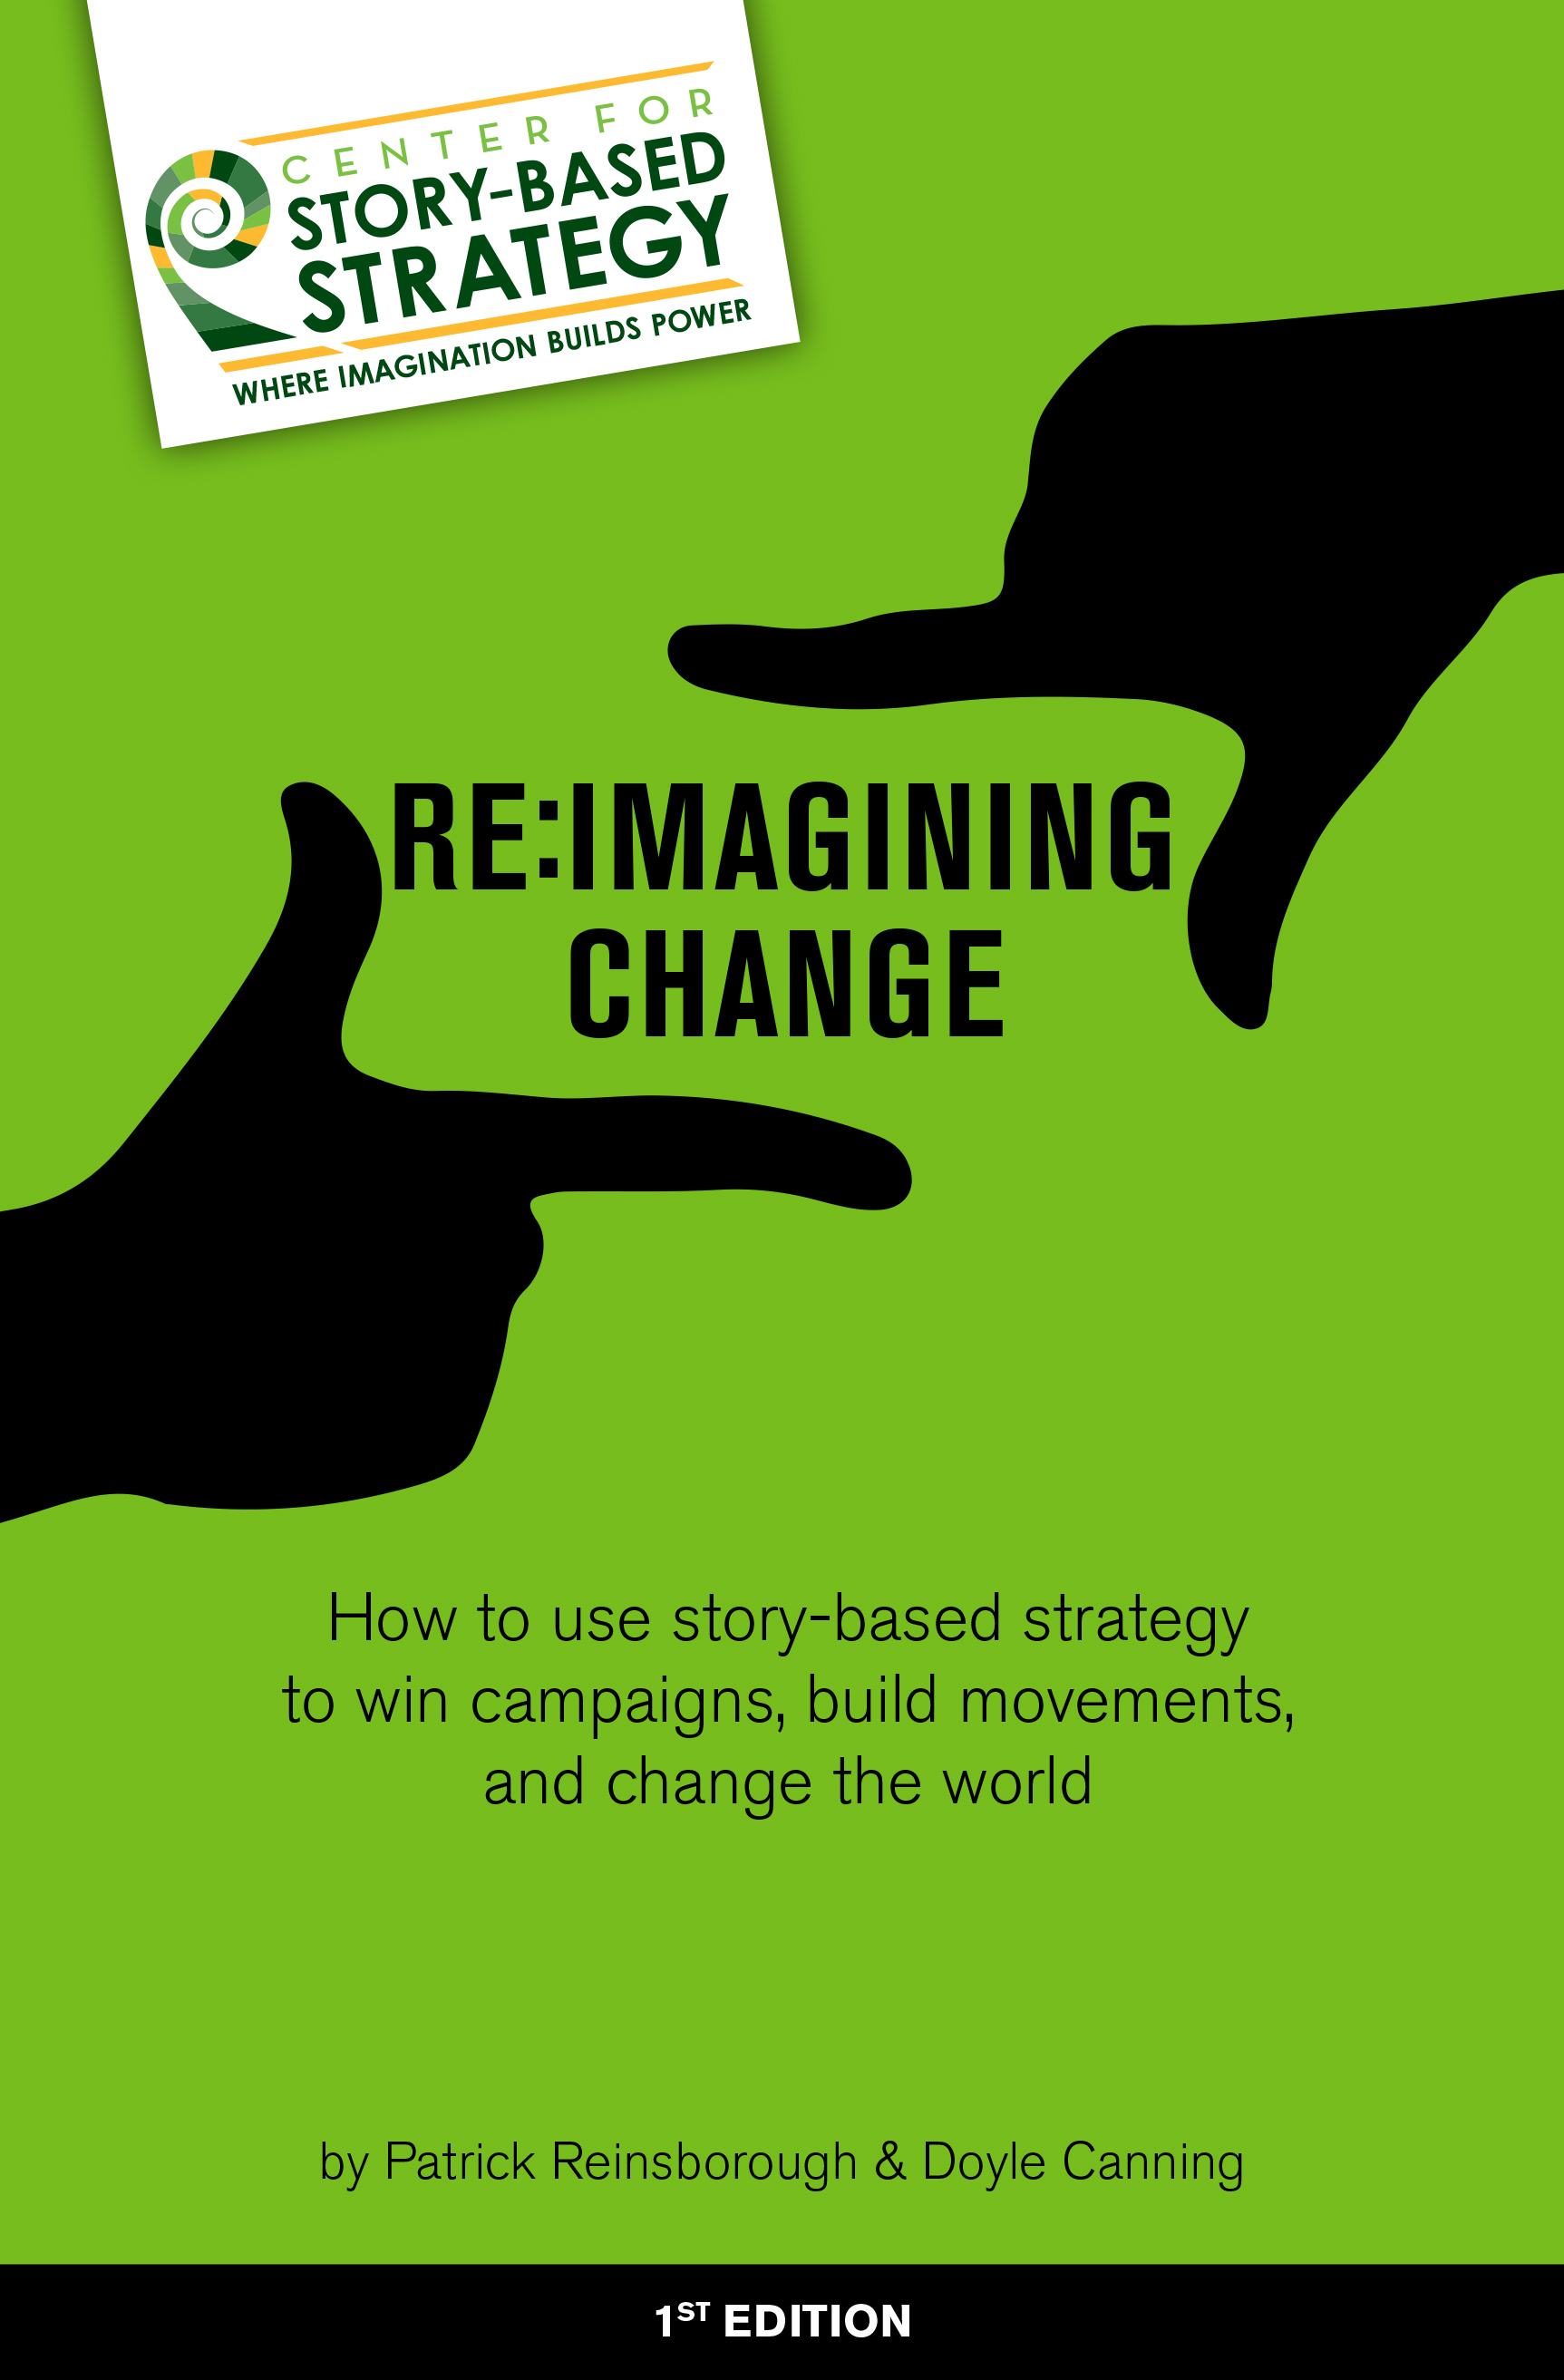 CSS-ReimaginingChange-1stEd EBOOK_cover.jpg